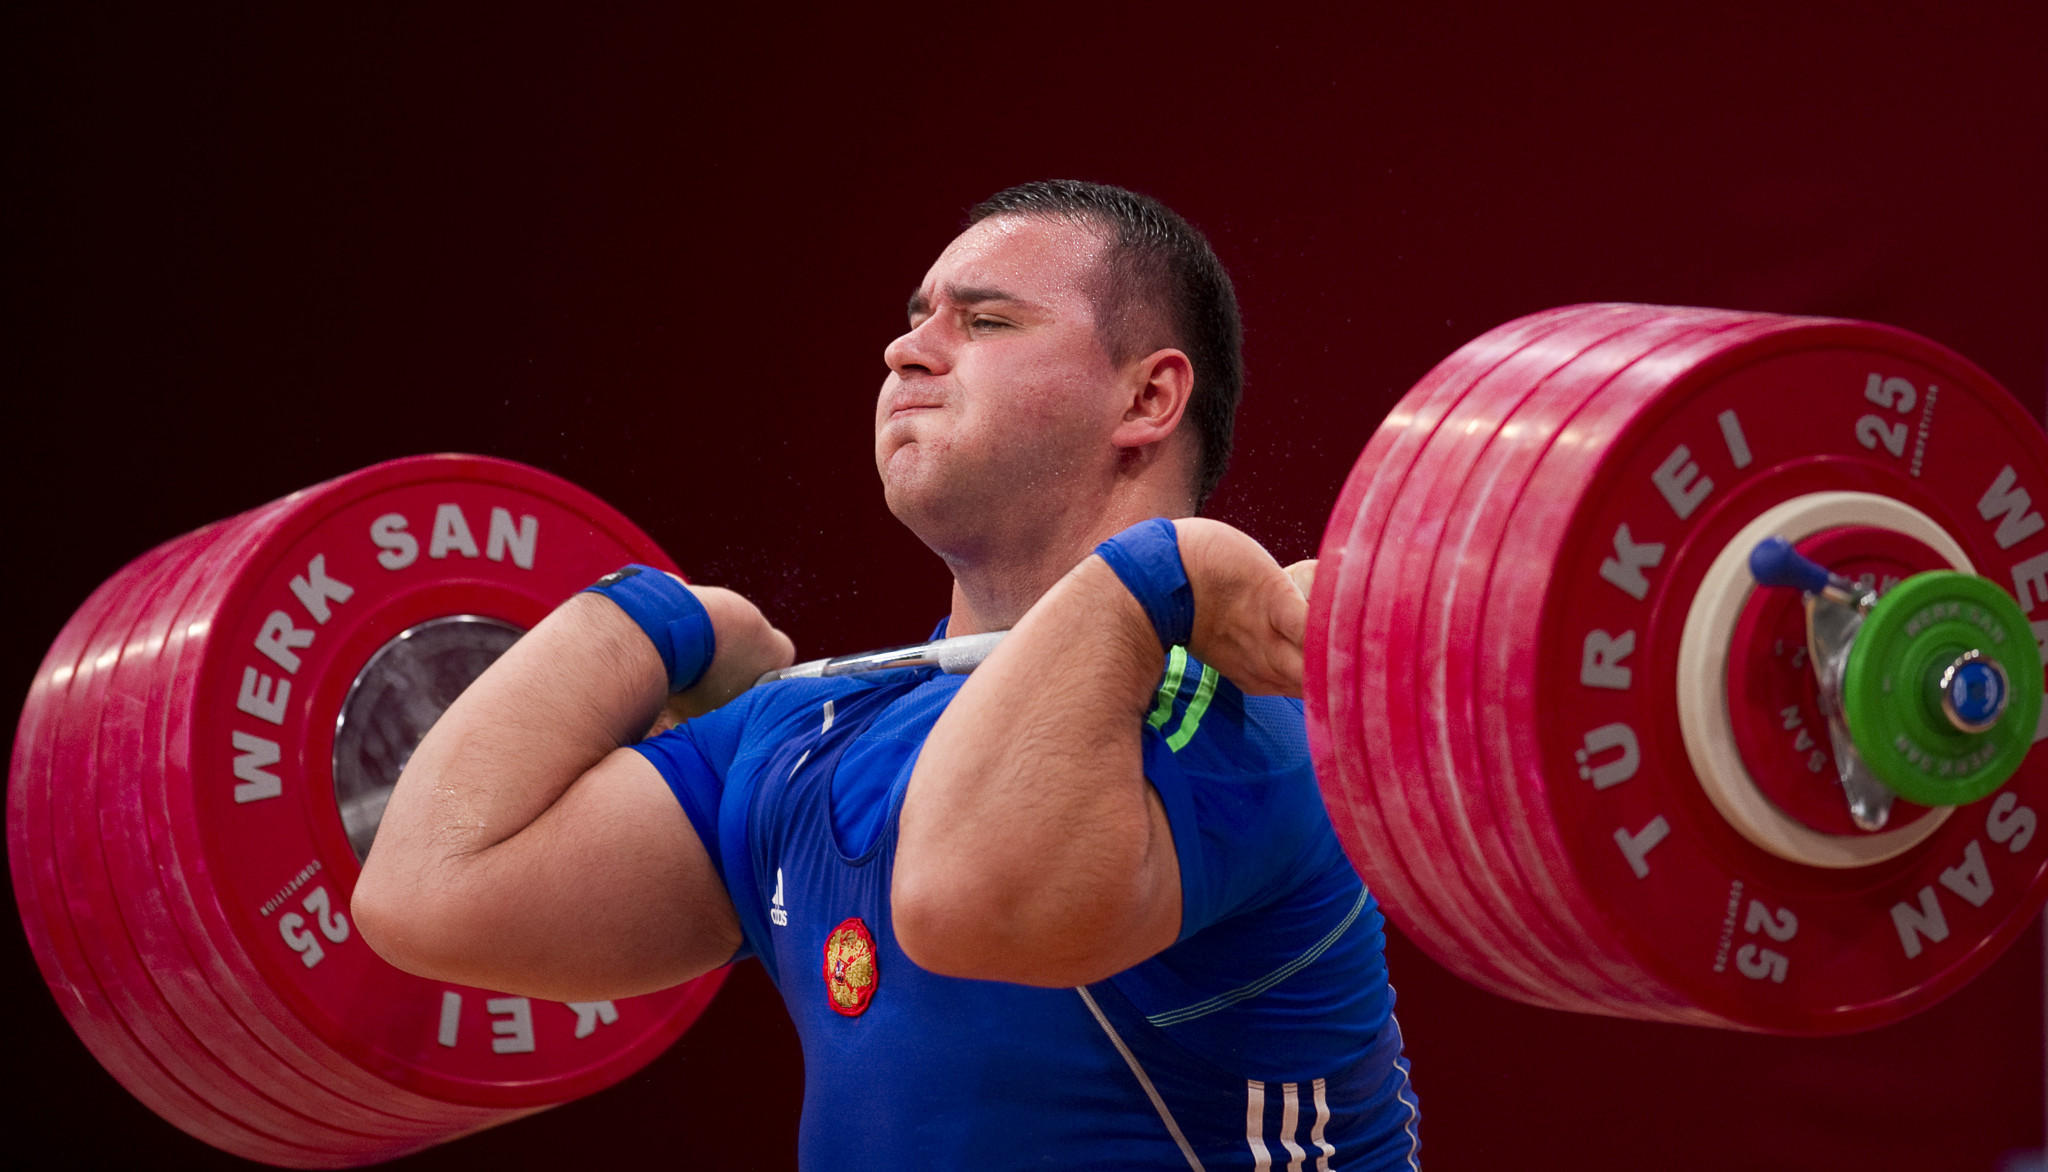 Ruslan Albegov has been banned for doping by the IWF ©Getty Images